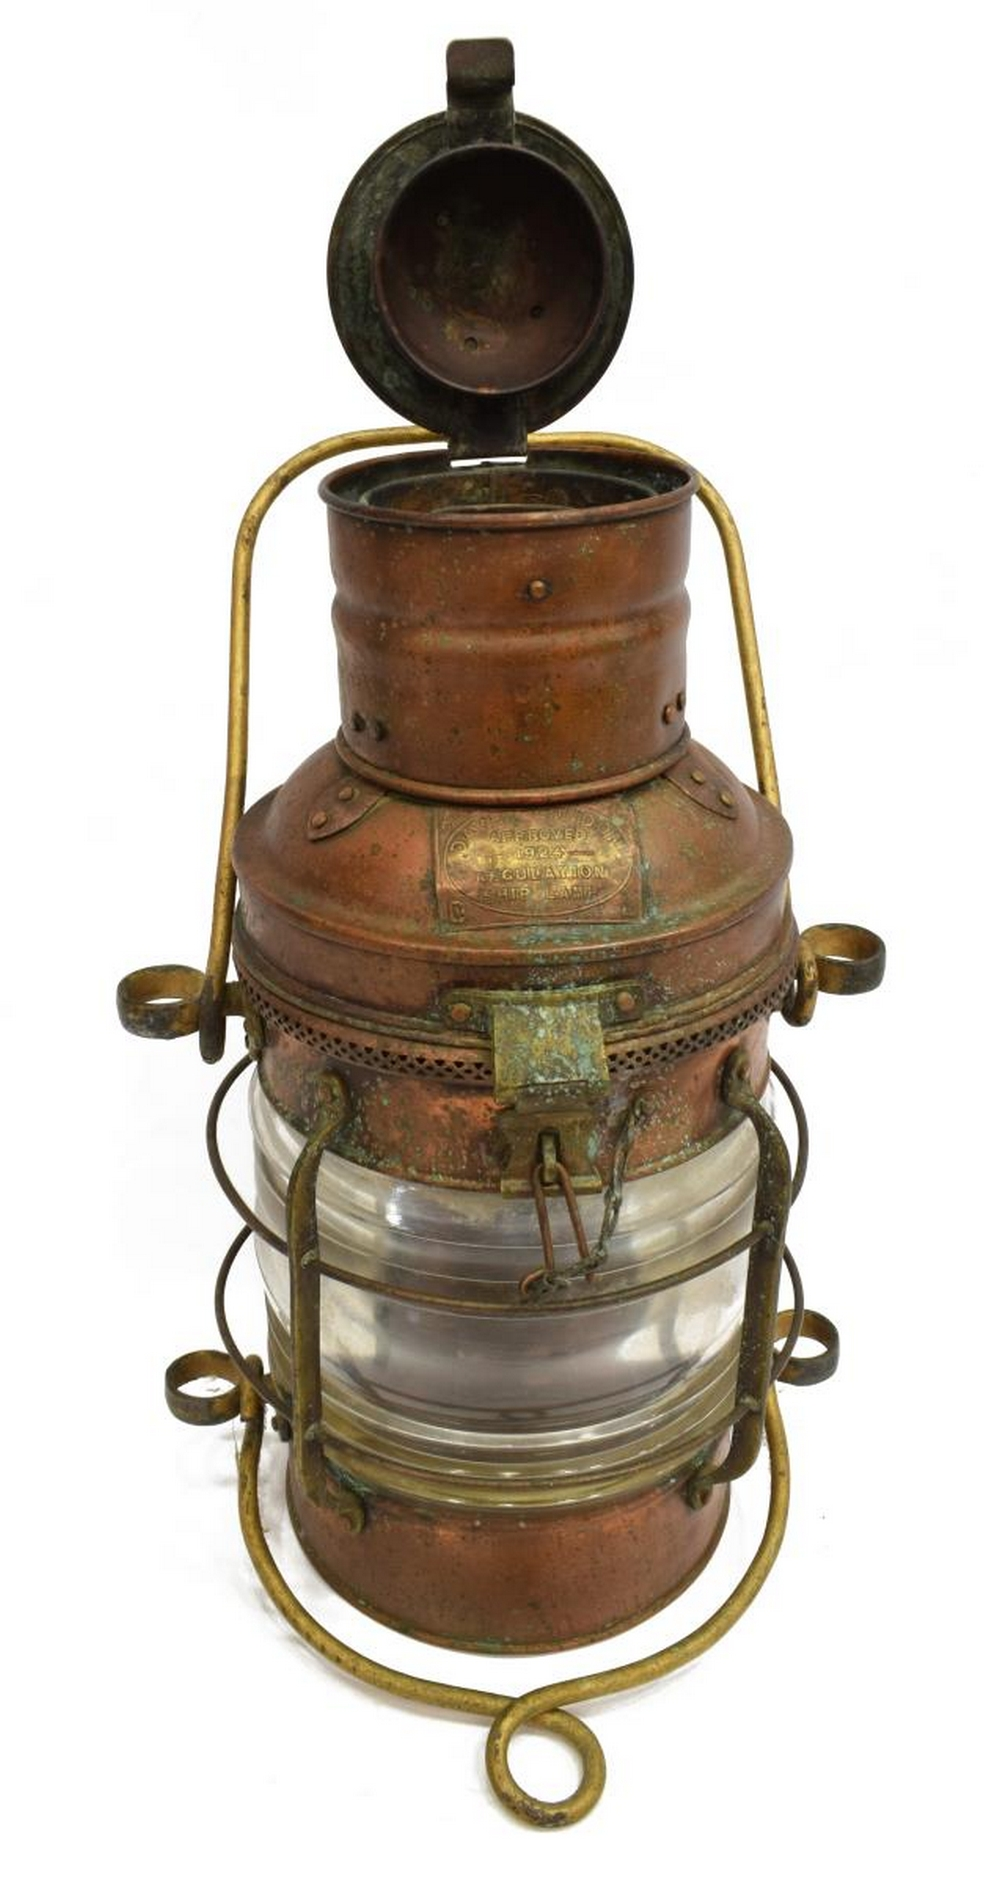 Lot 520: DAVEY 1924 REGULATION COPPER SHIPS LAMP LANTERN